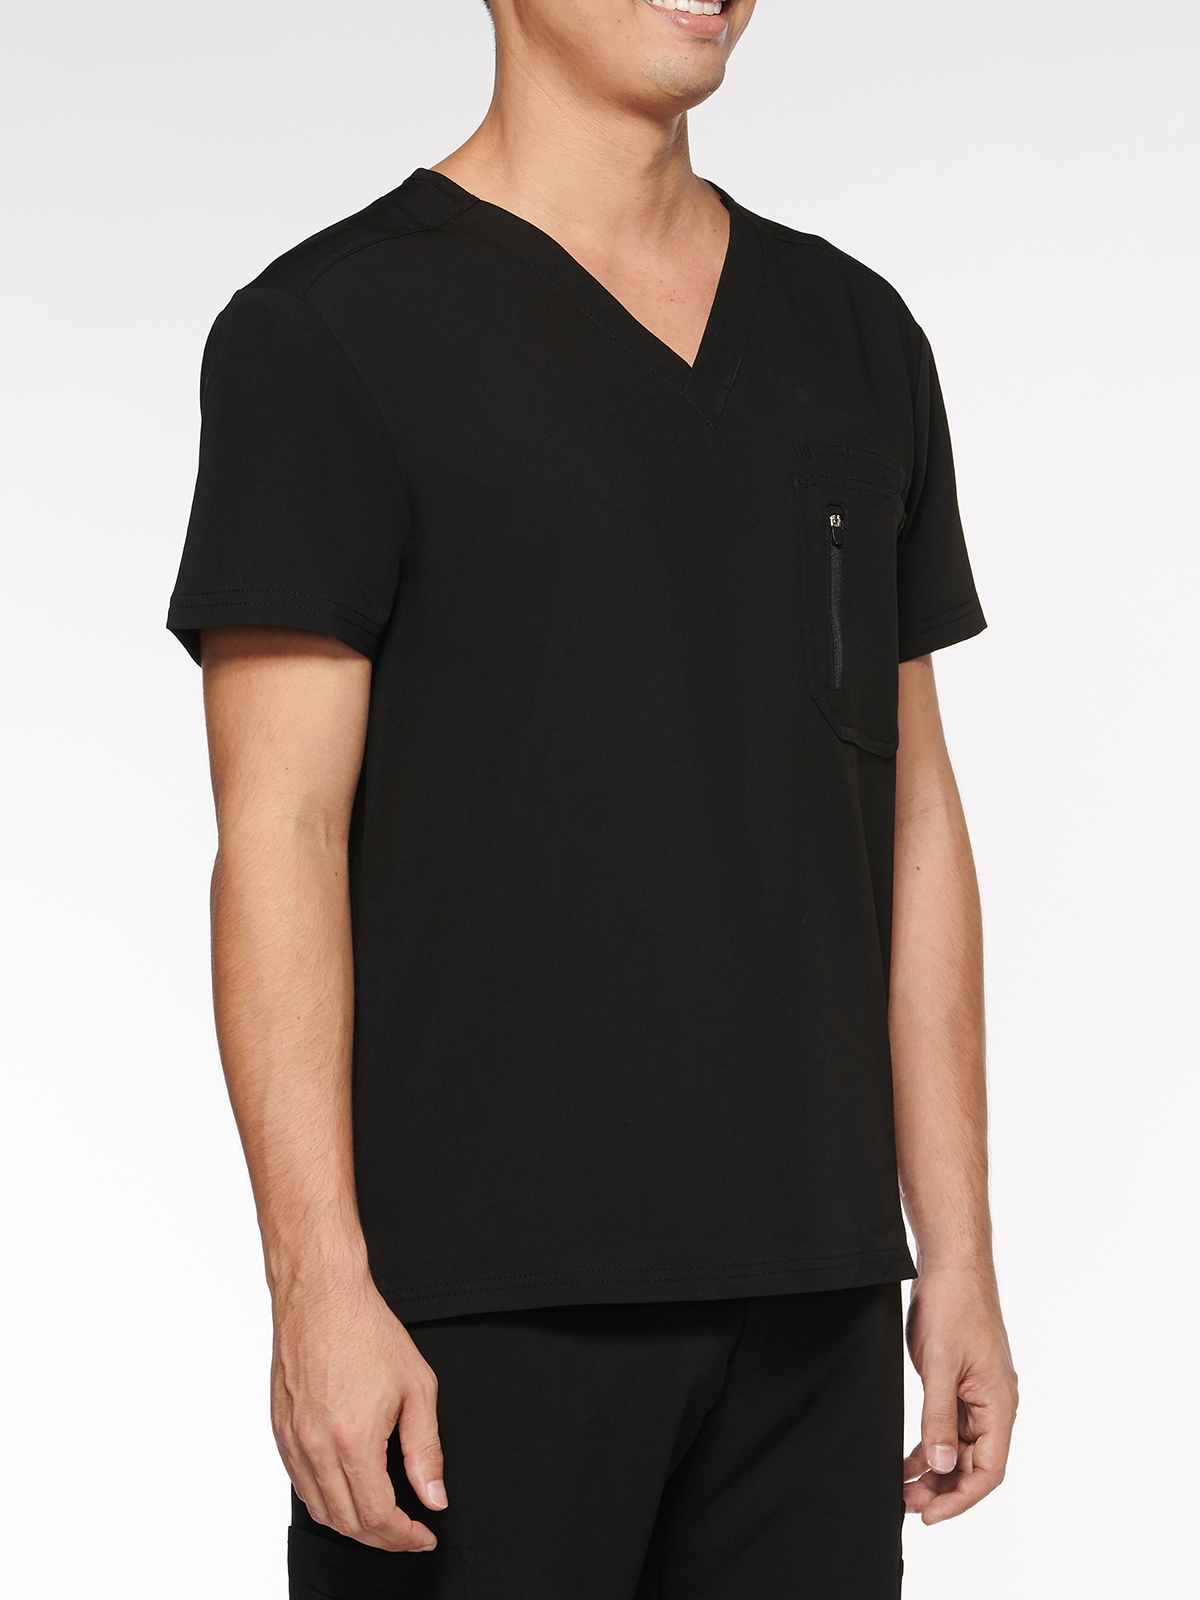 Mens Top Classic V-Neck with 4 Pockets